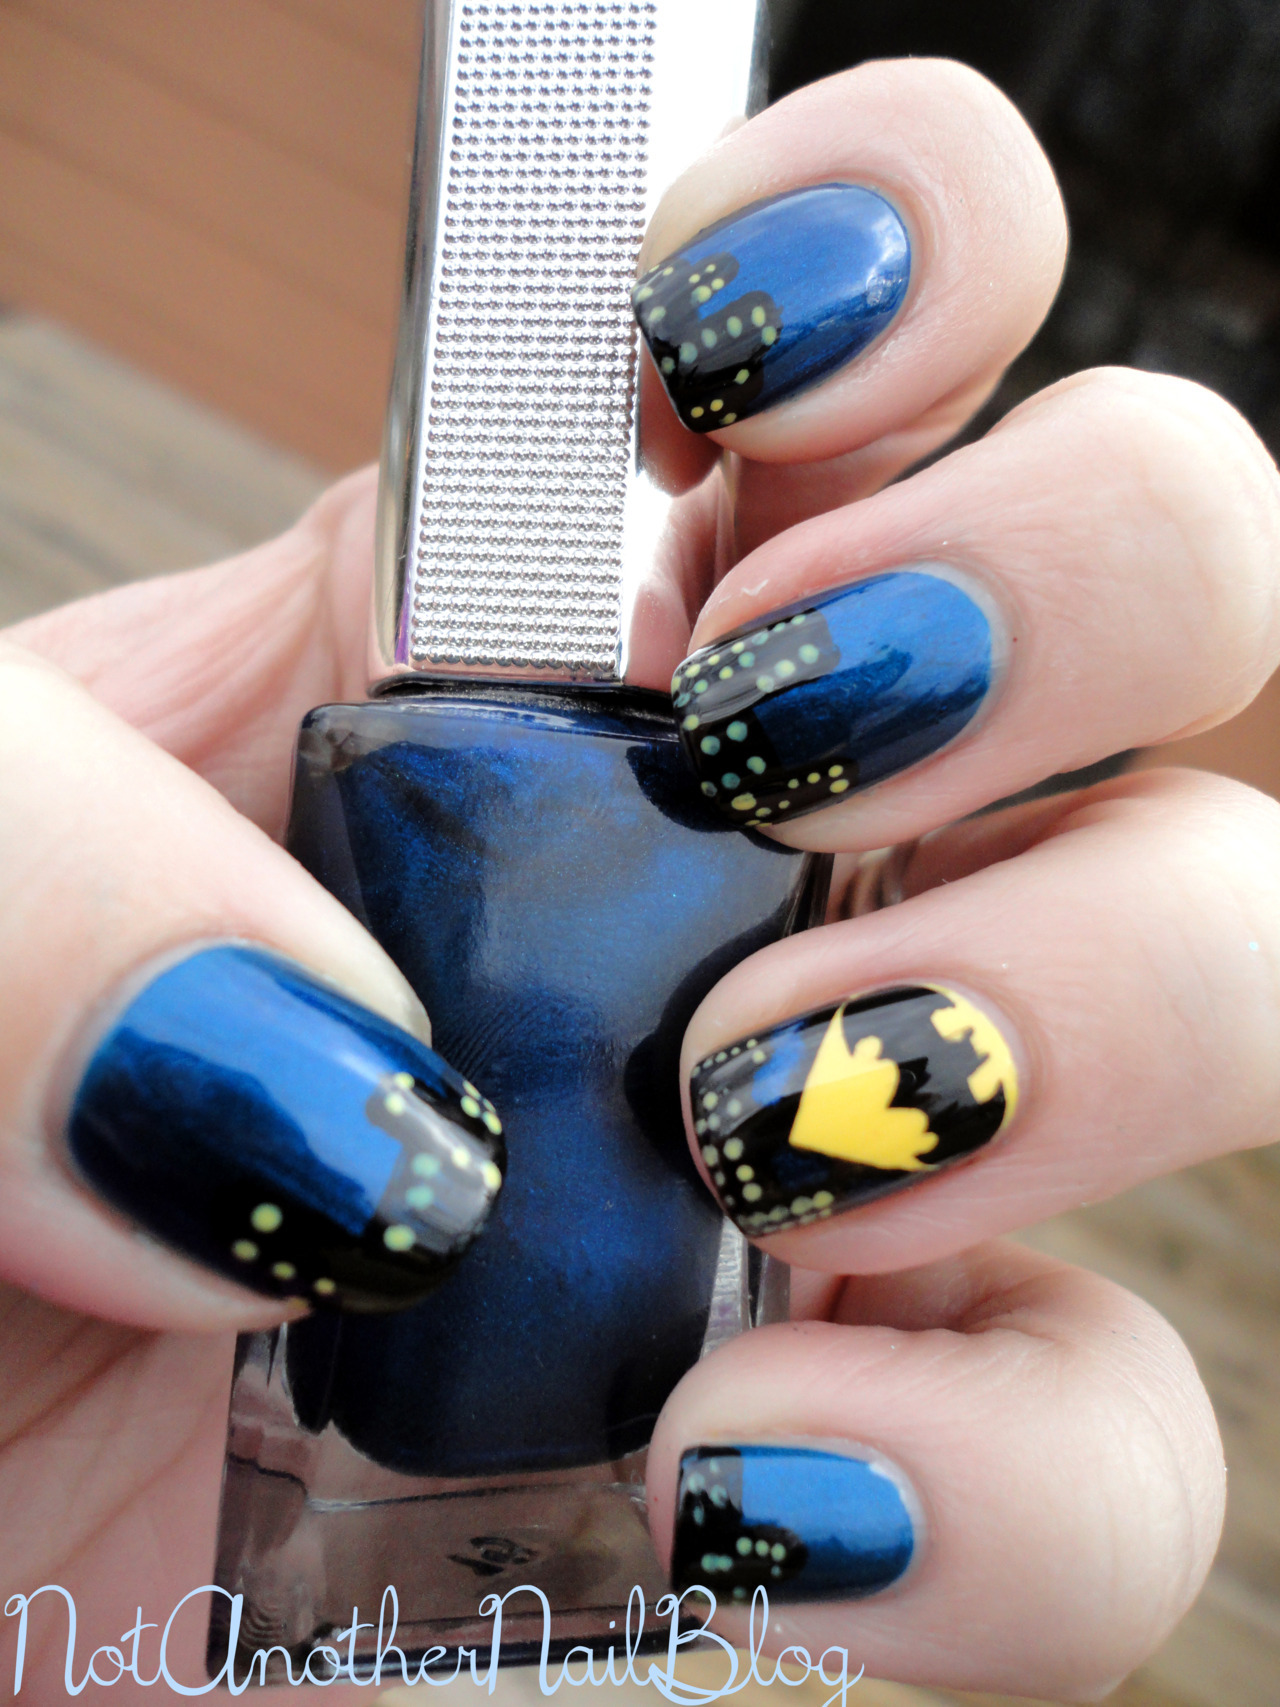 notanothernailblog:  Na na na na na na na na na na na na na na na na, Batman! Yes, yes. I'm sure you all already know how big of a geek I am so todays manicure should come as no surprise. I used China Glaze Liquid Leather, Zoya Pippa, and an unnamed blue (the bottle has no name or identifying markers).  What do you think?